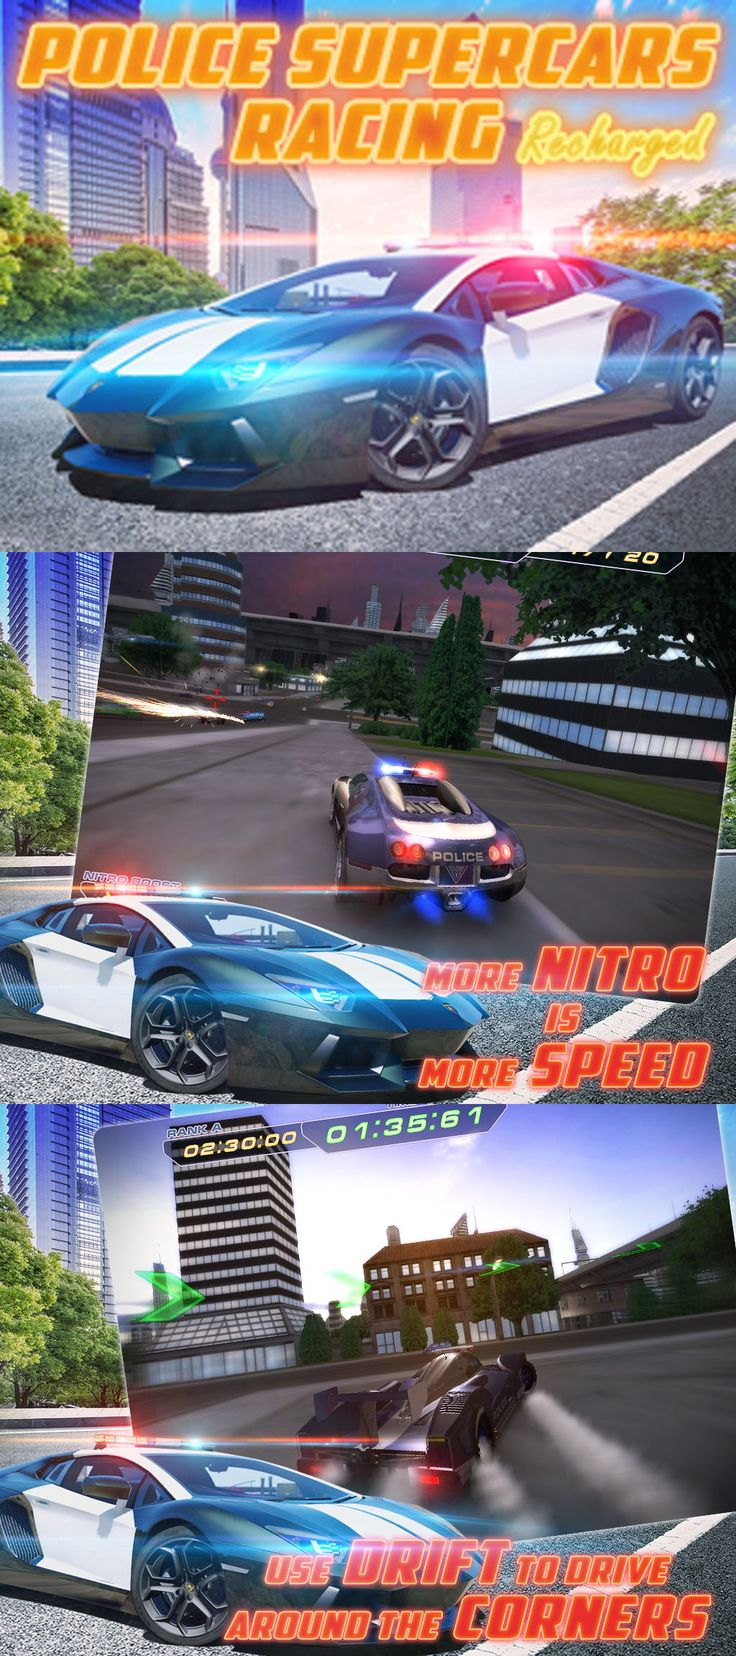 Police Supercars Racing Recharged Game Download Cool Photos Cool Pictures Love Photos